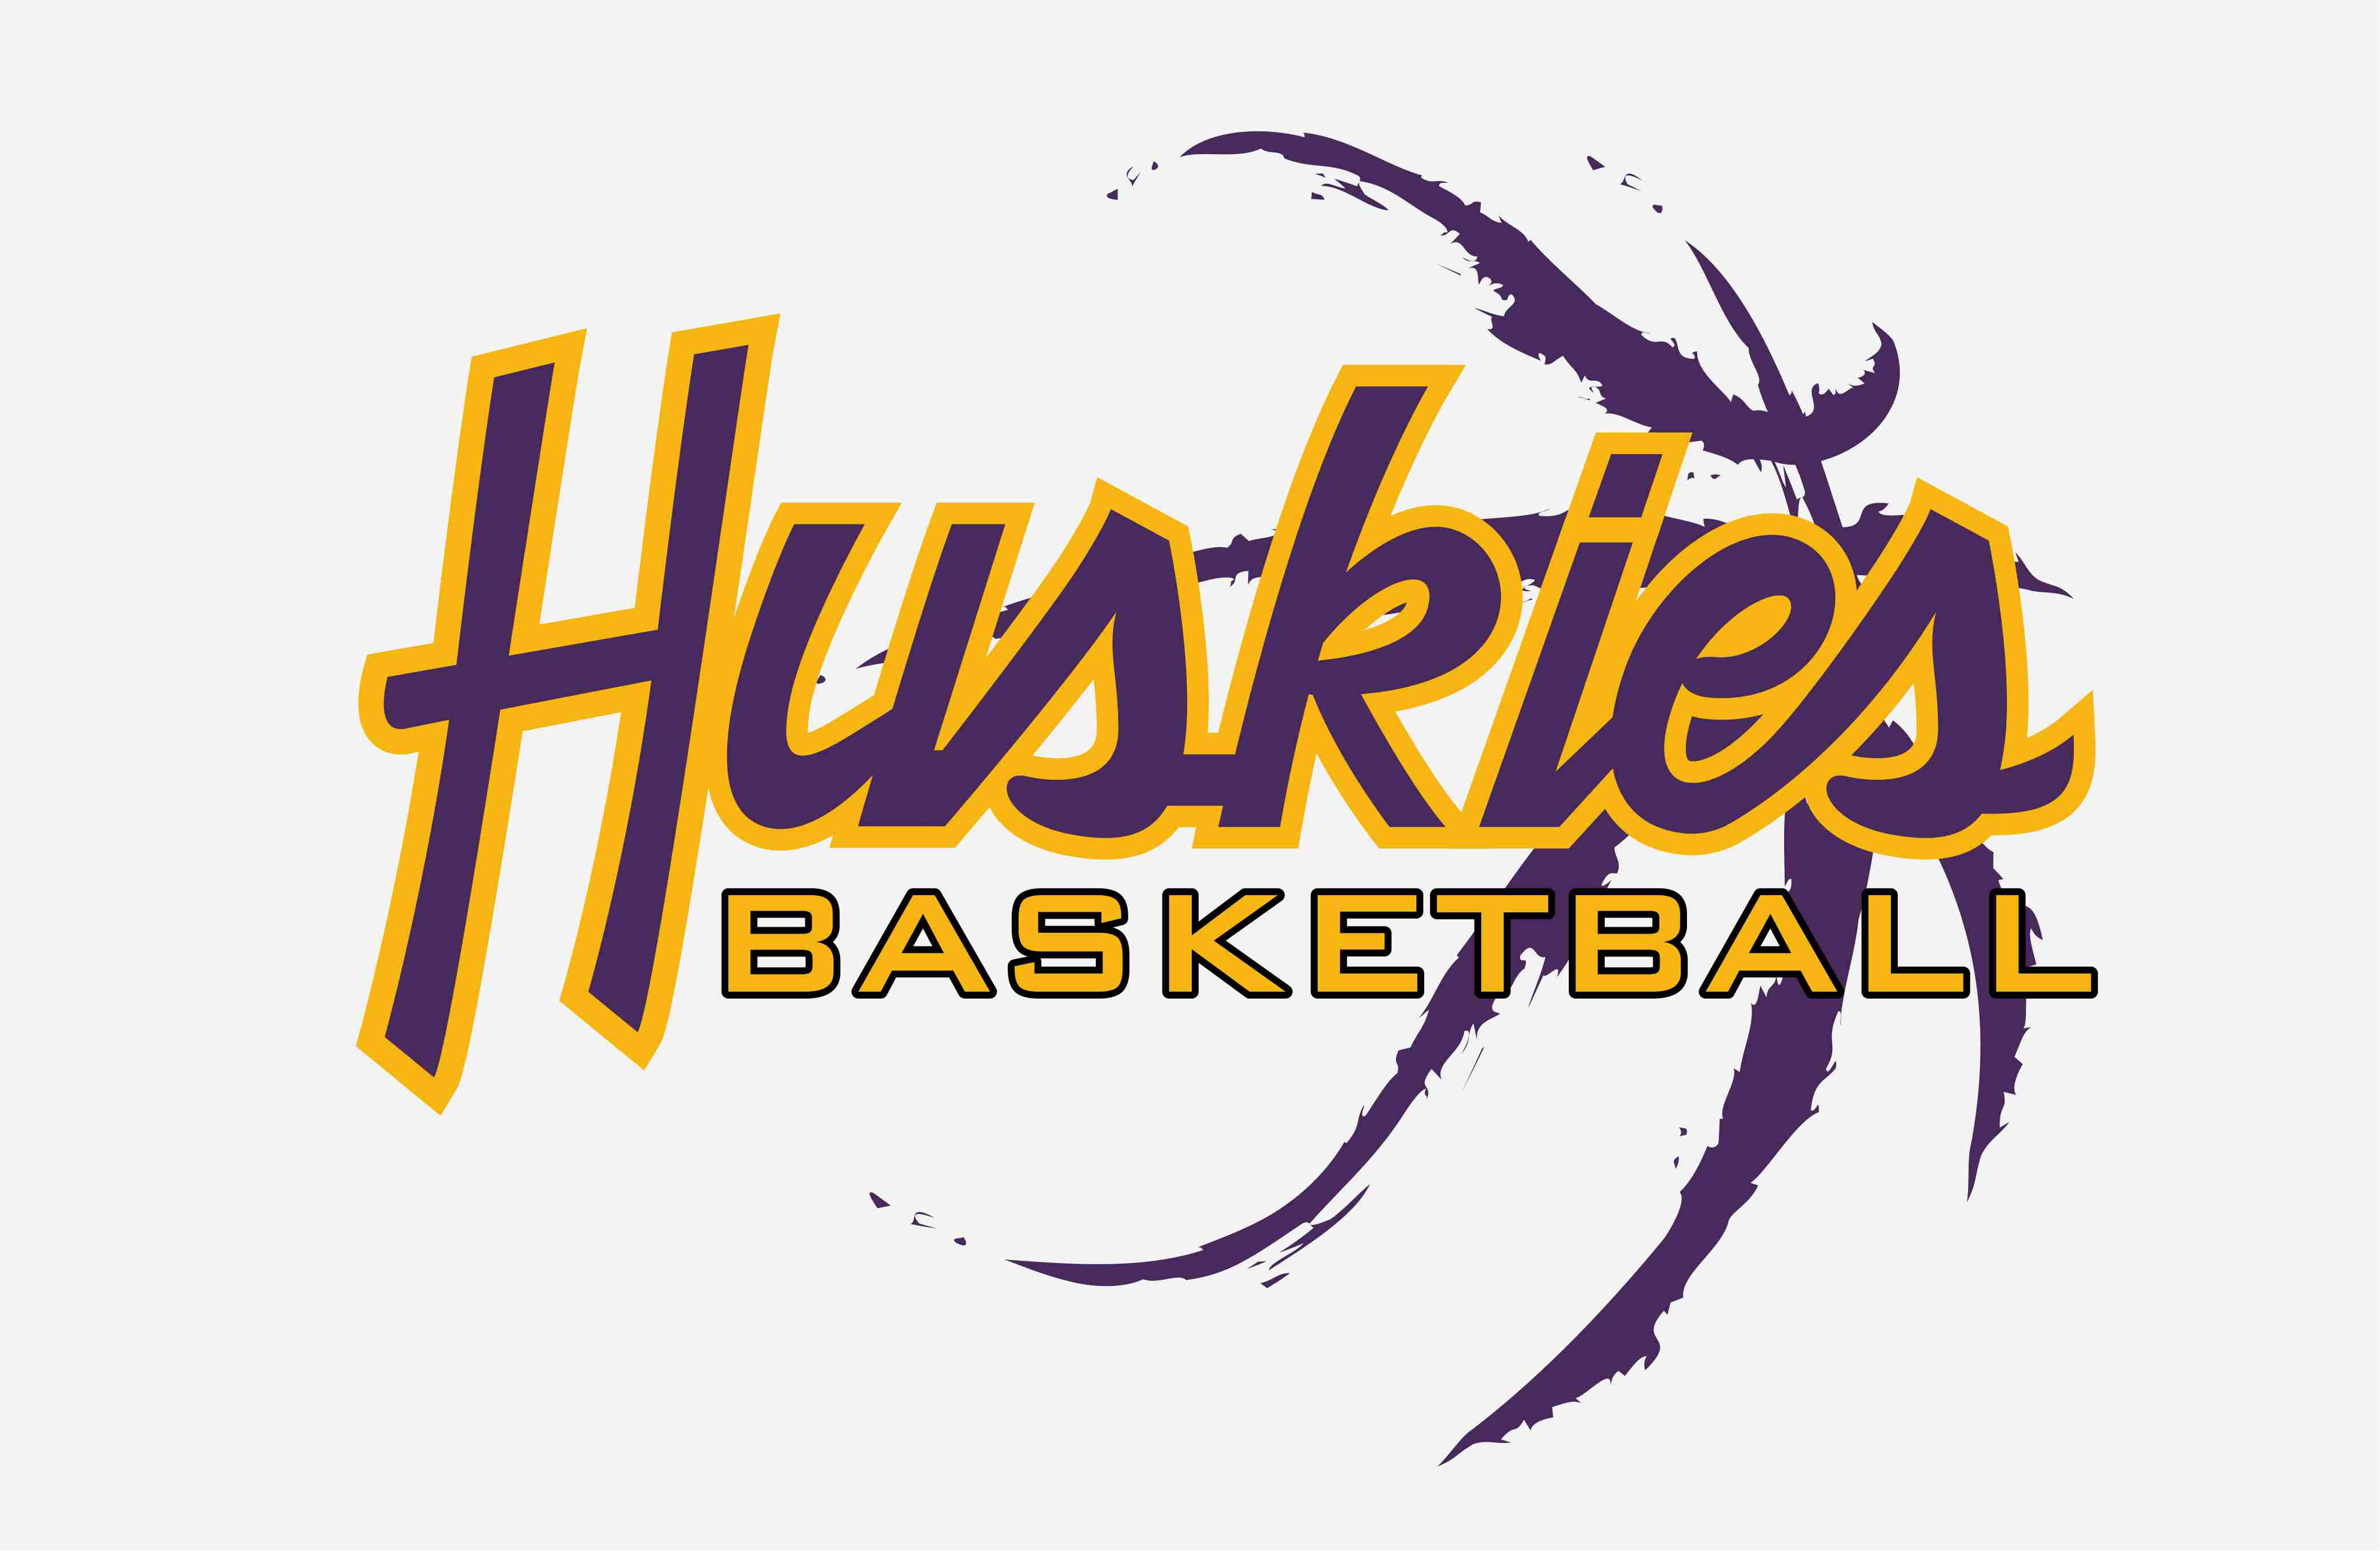 Huskies Basketball